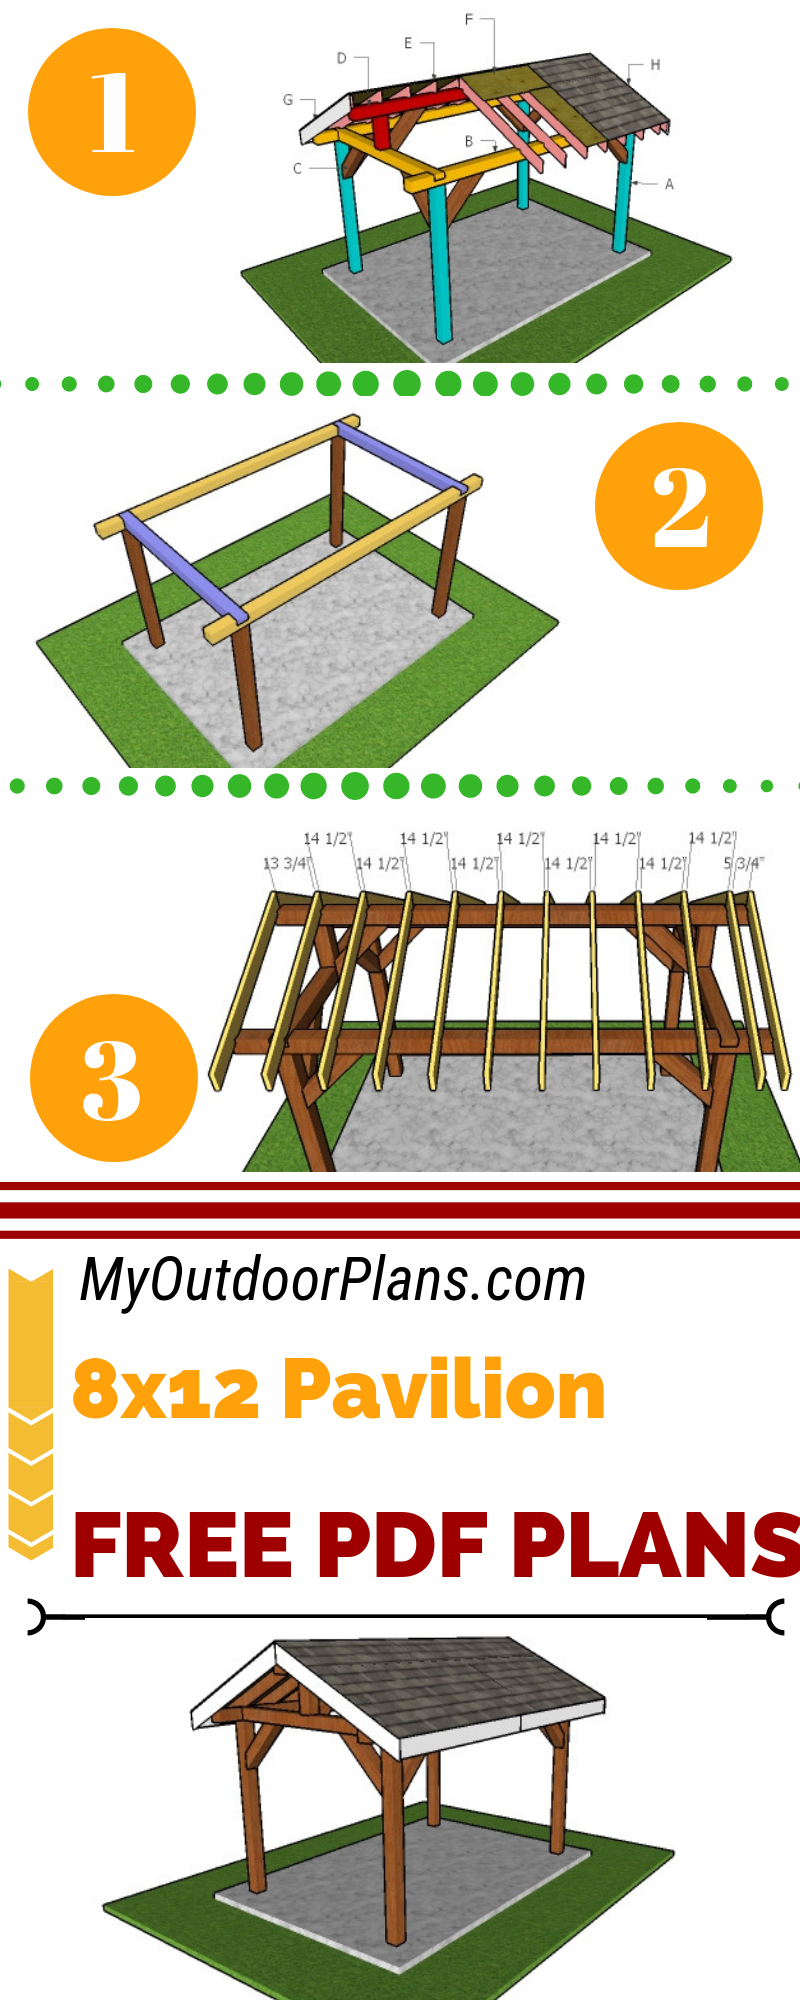 This is a step by step guide on how to build a 8x12